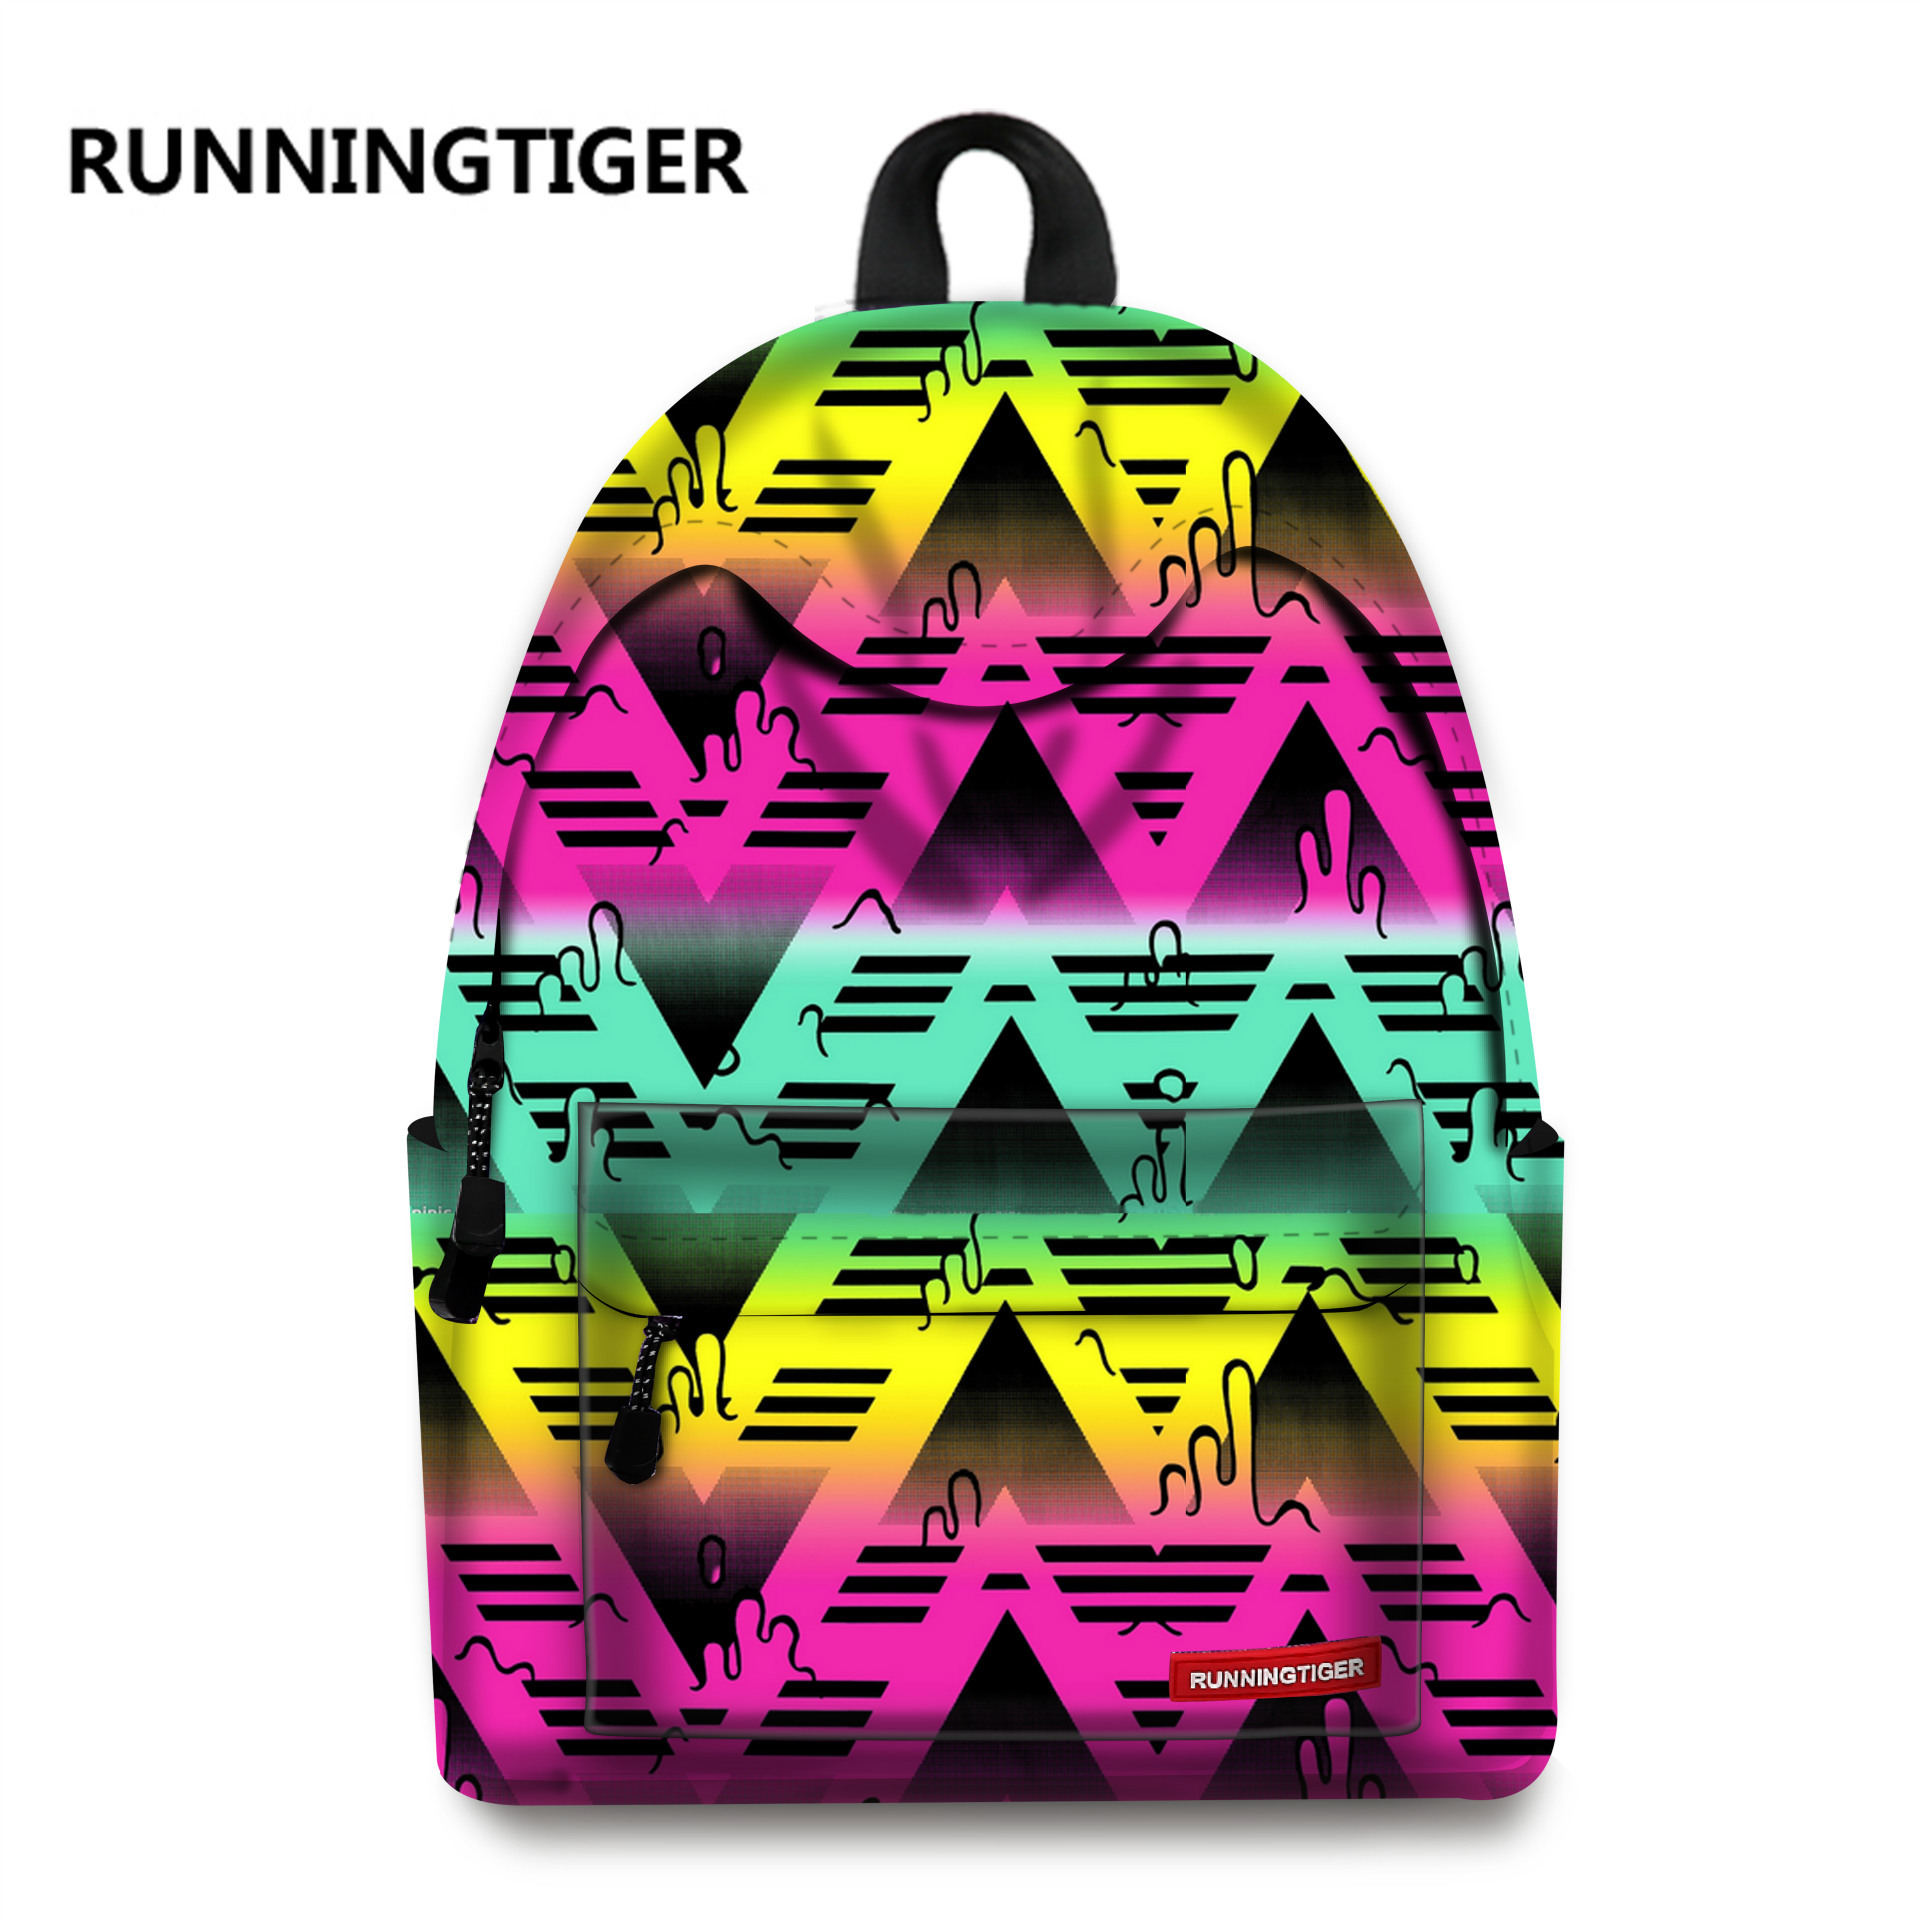 Women Printing Backpack 2017 New School Bags For Teenager Girls Dream bag diary school bag mochila feminina Backpacks space